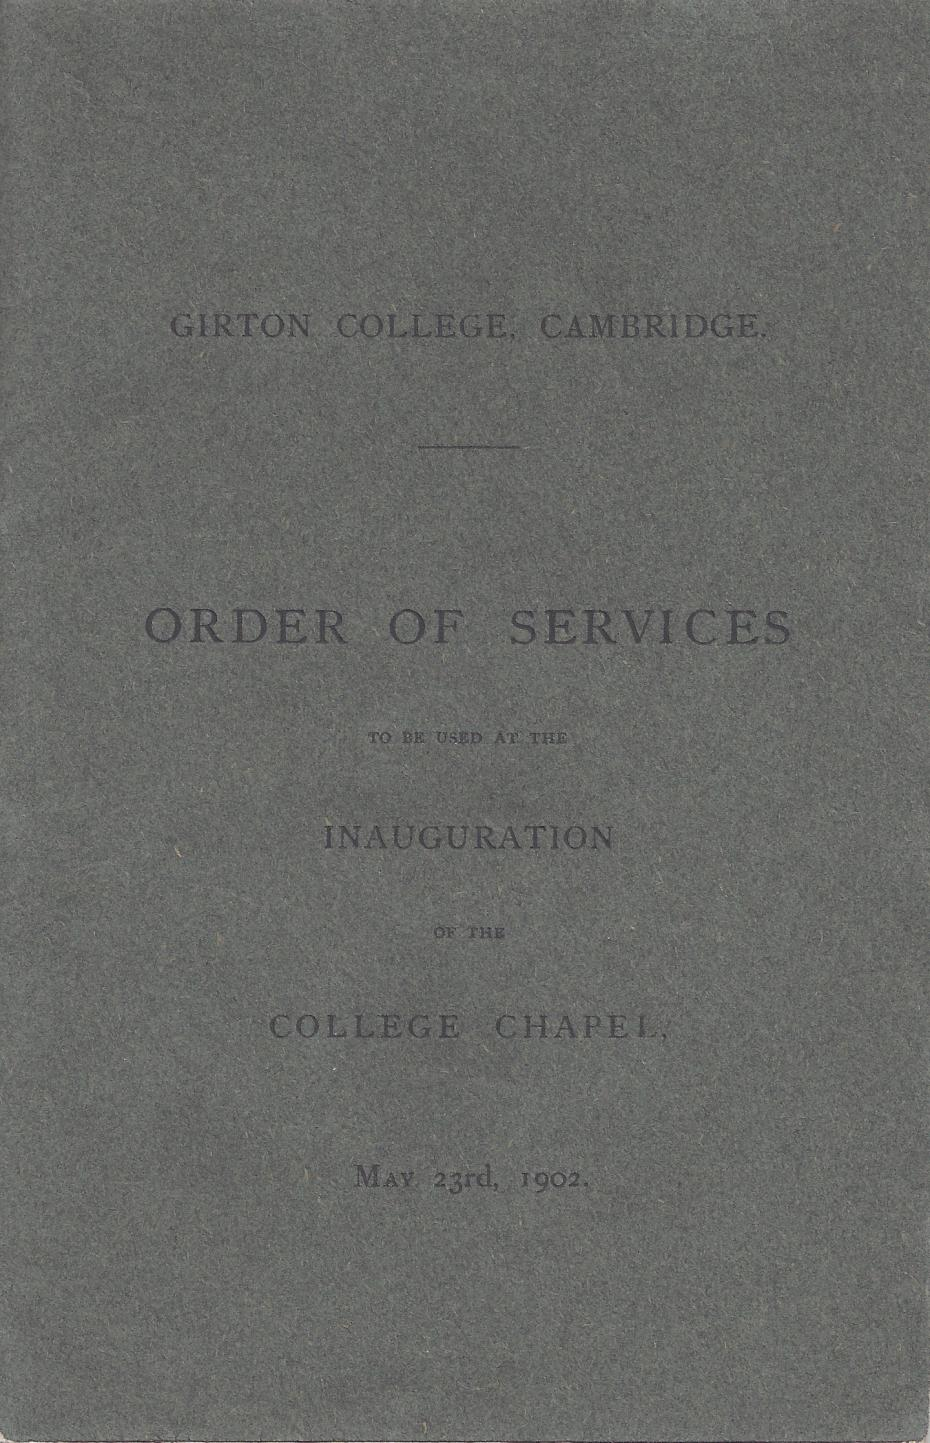 'Order of Services to be used at the inauguration of the College Chapel', 23 May 1902 (archive reference: GCAR 6/4/3).